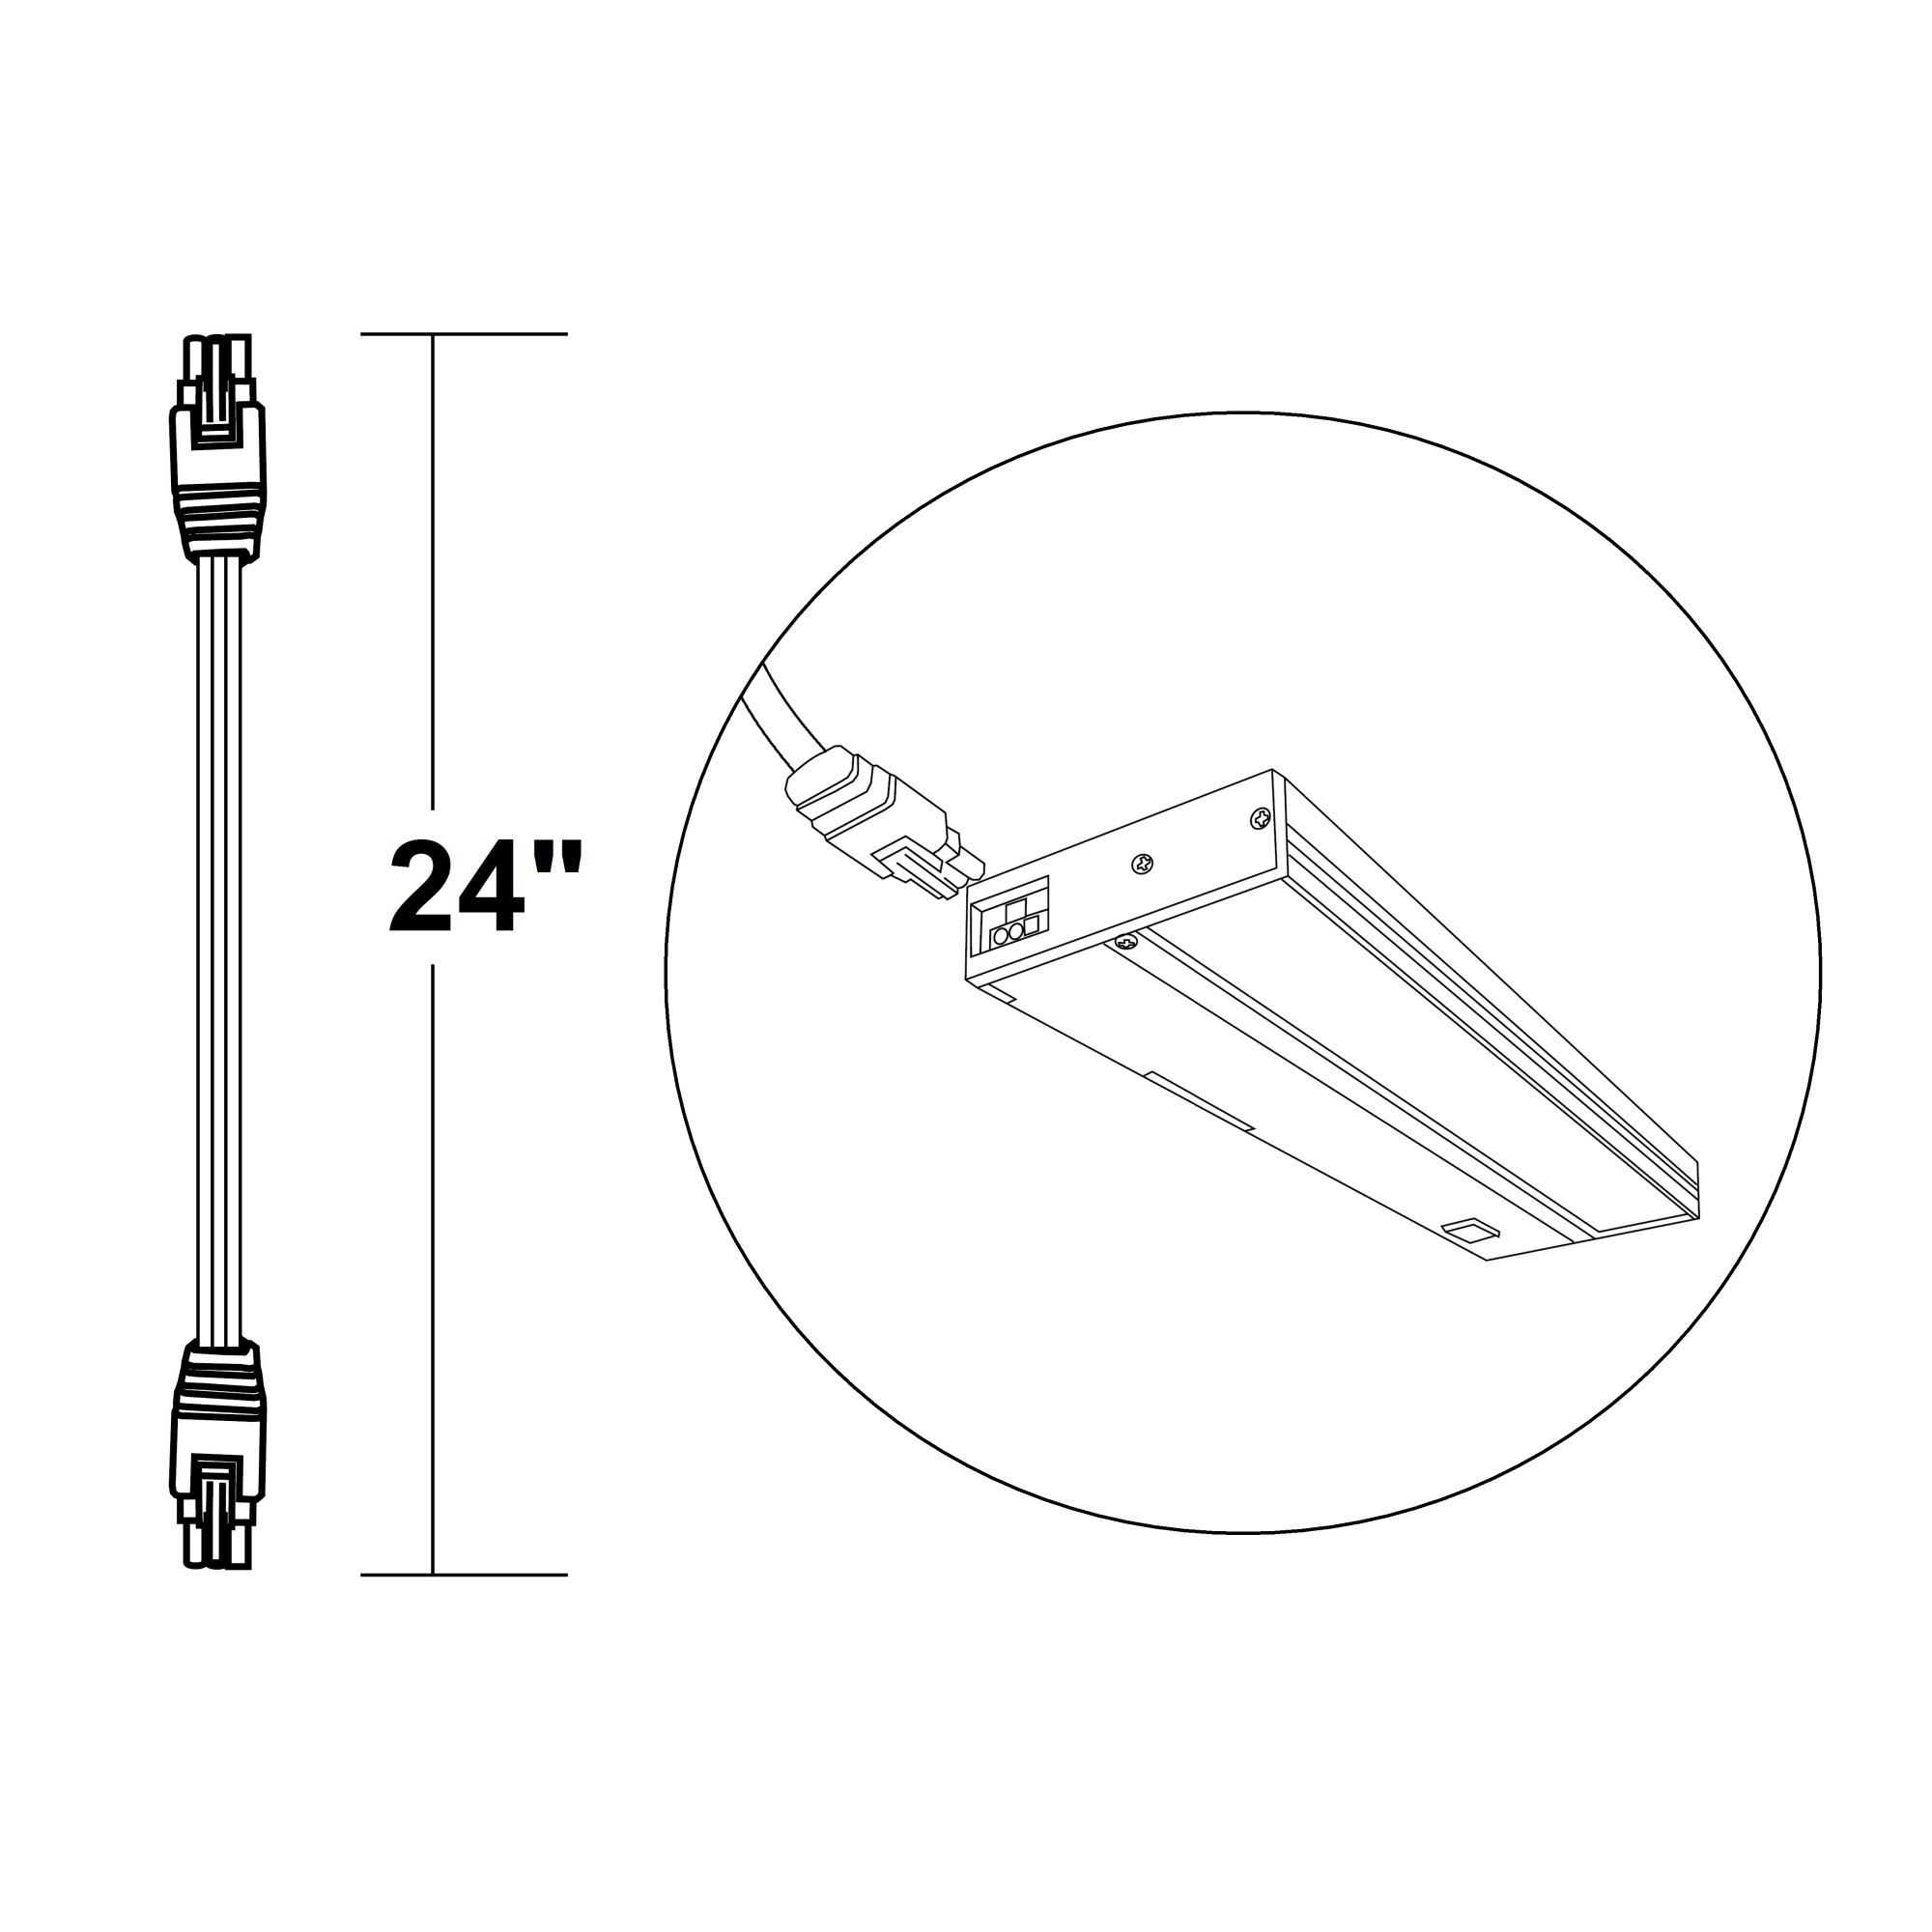 Nicor Nuc 4 Jumper 24 Wh 24 Inch Jumper Cable For Linkable D